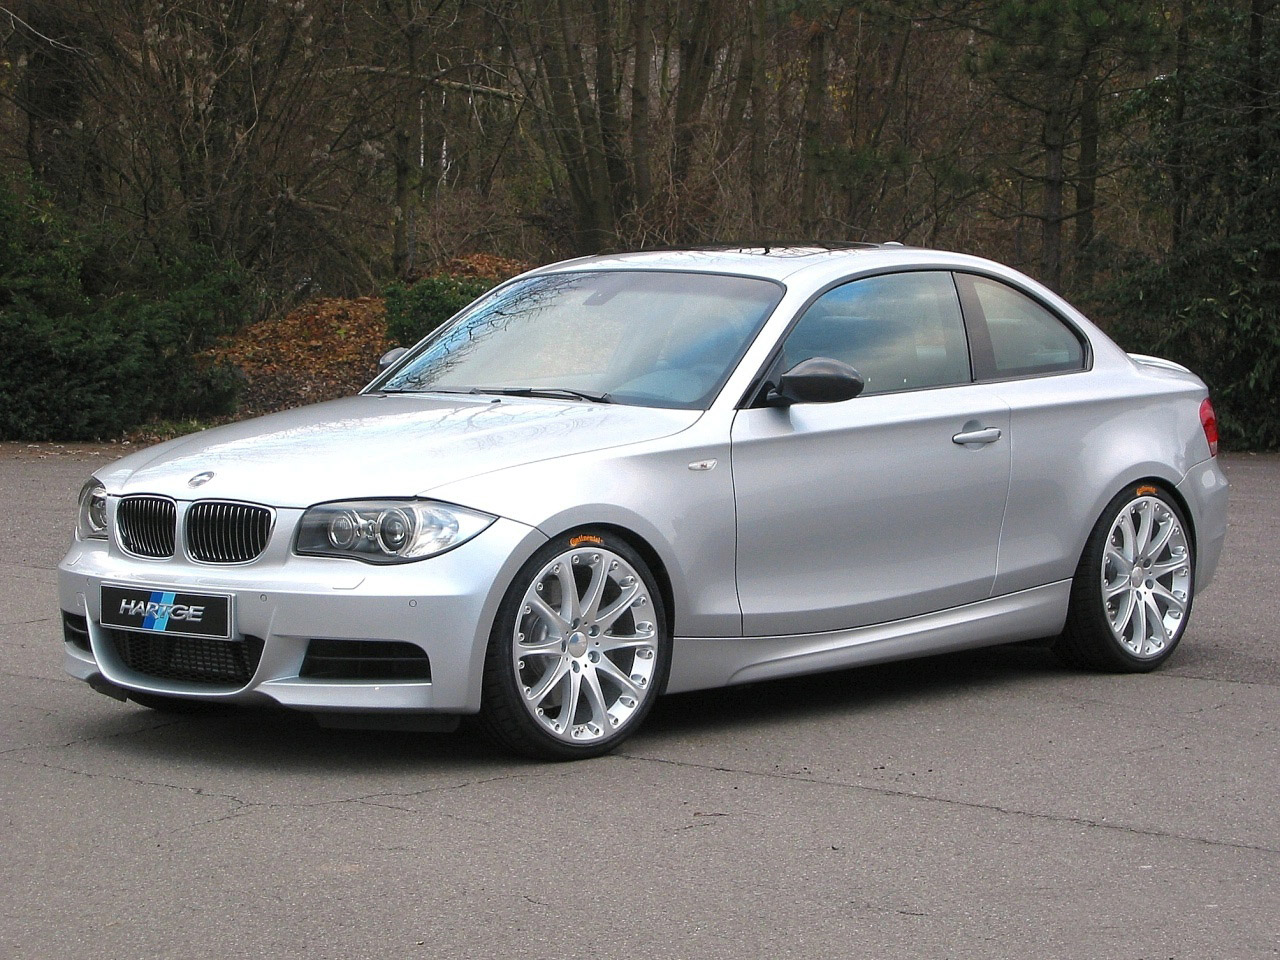 Bmw 135i 2008 Review Amazing Pictures And Images Look